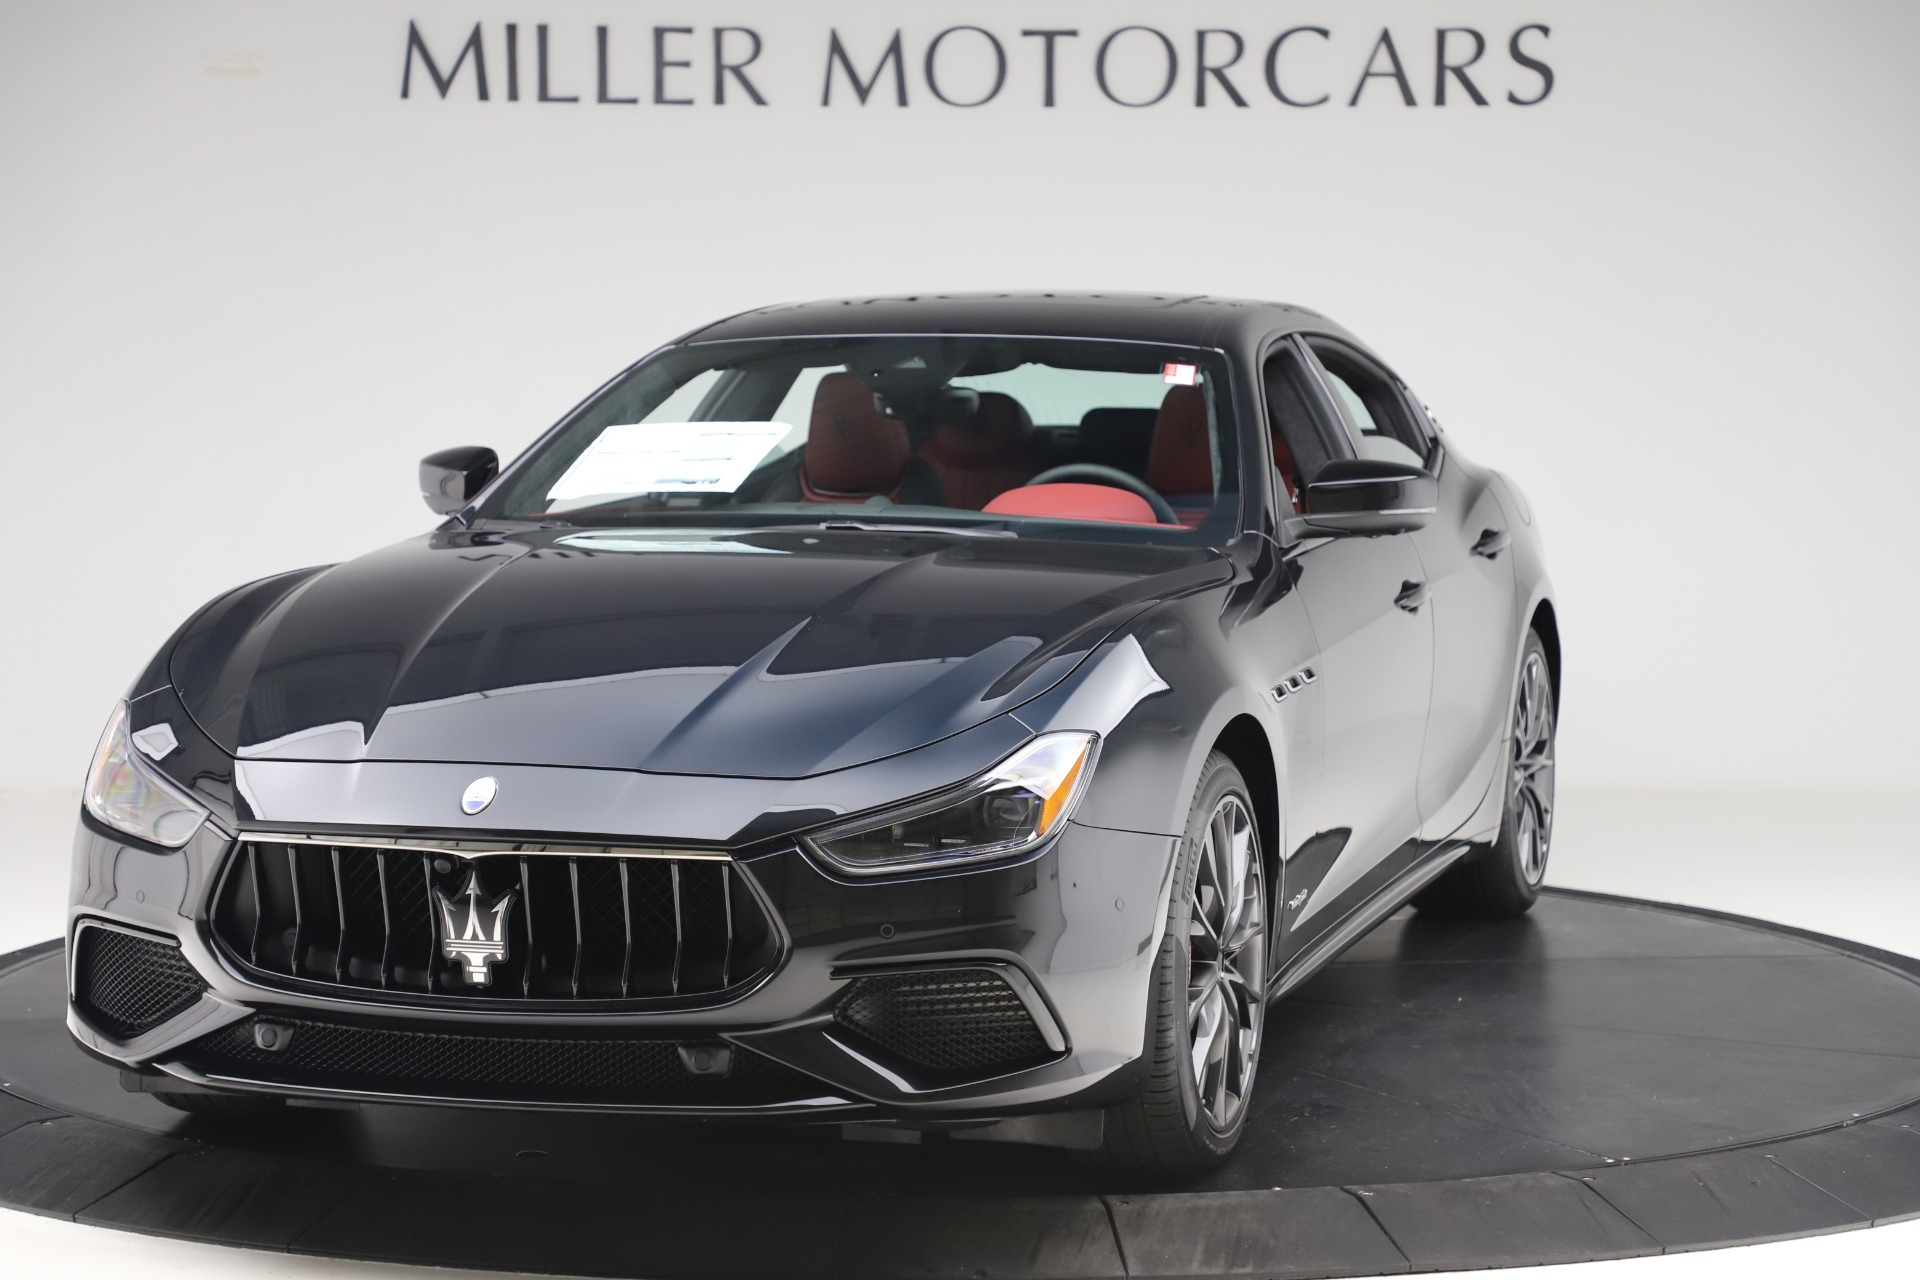 New 2020 Maserati Ghibli S Q4 GranSport for sale $94,785 at Bentley Greenwich in Greenwich CT 06830 1